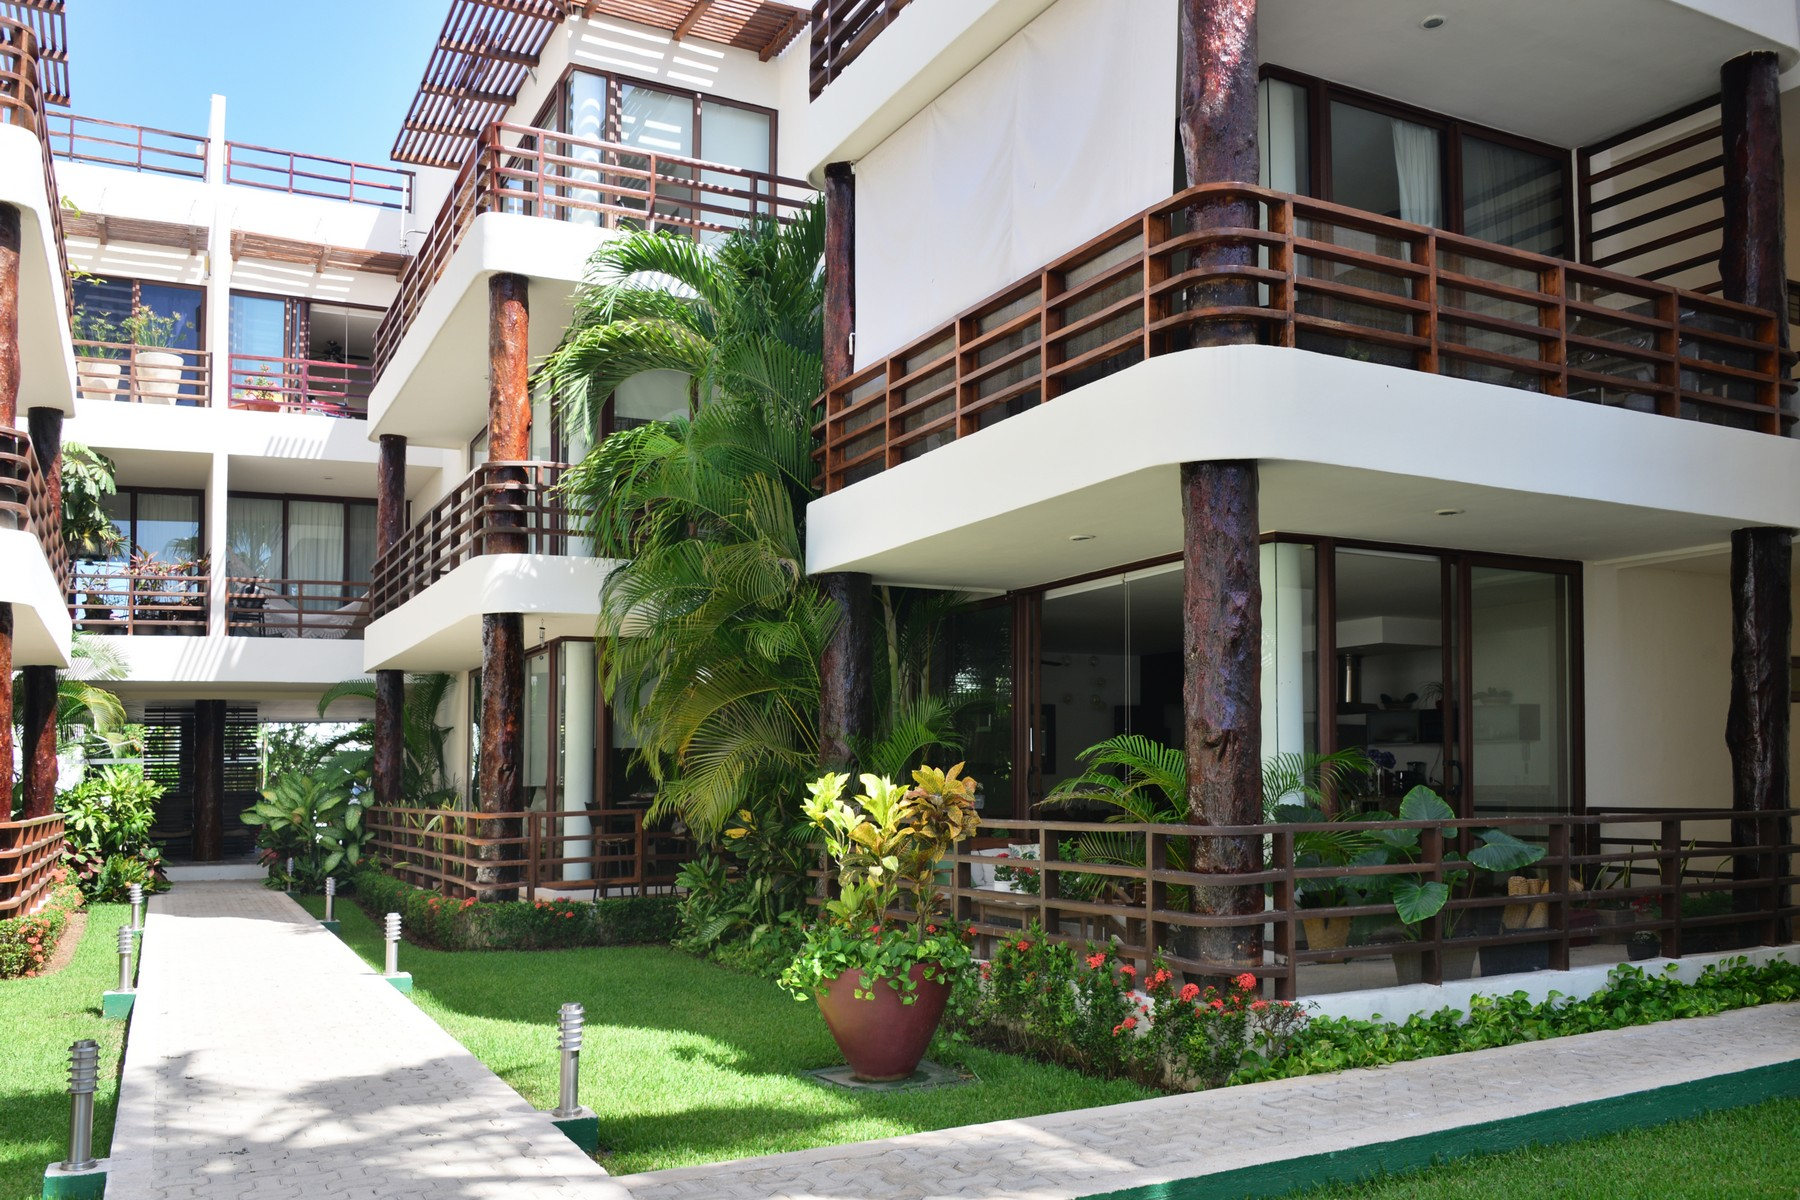 Additional photo for property listing at AKOYA LIVING IN THE GREEN Akoya, Villas Pakal Ret 3 Chichenitza Lot 19 Mza 16 Playa Del Carmen, Quintana Roo 77710 Mexico